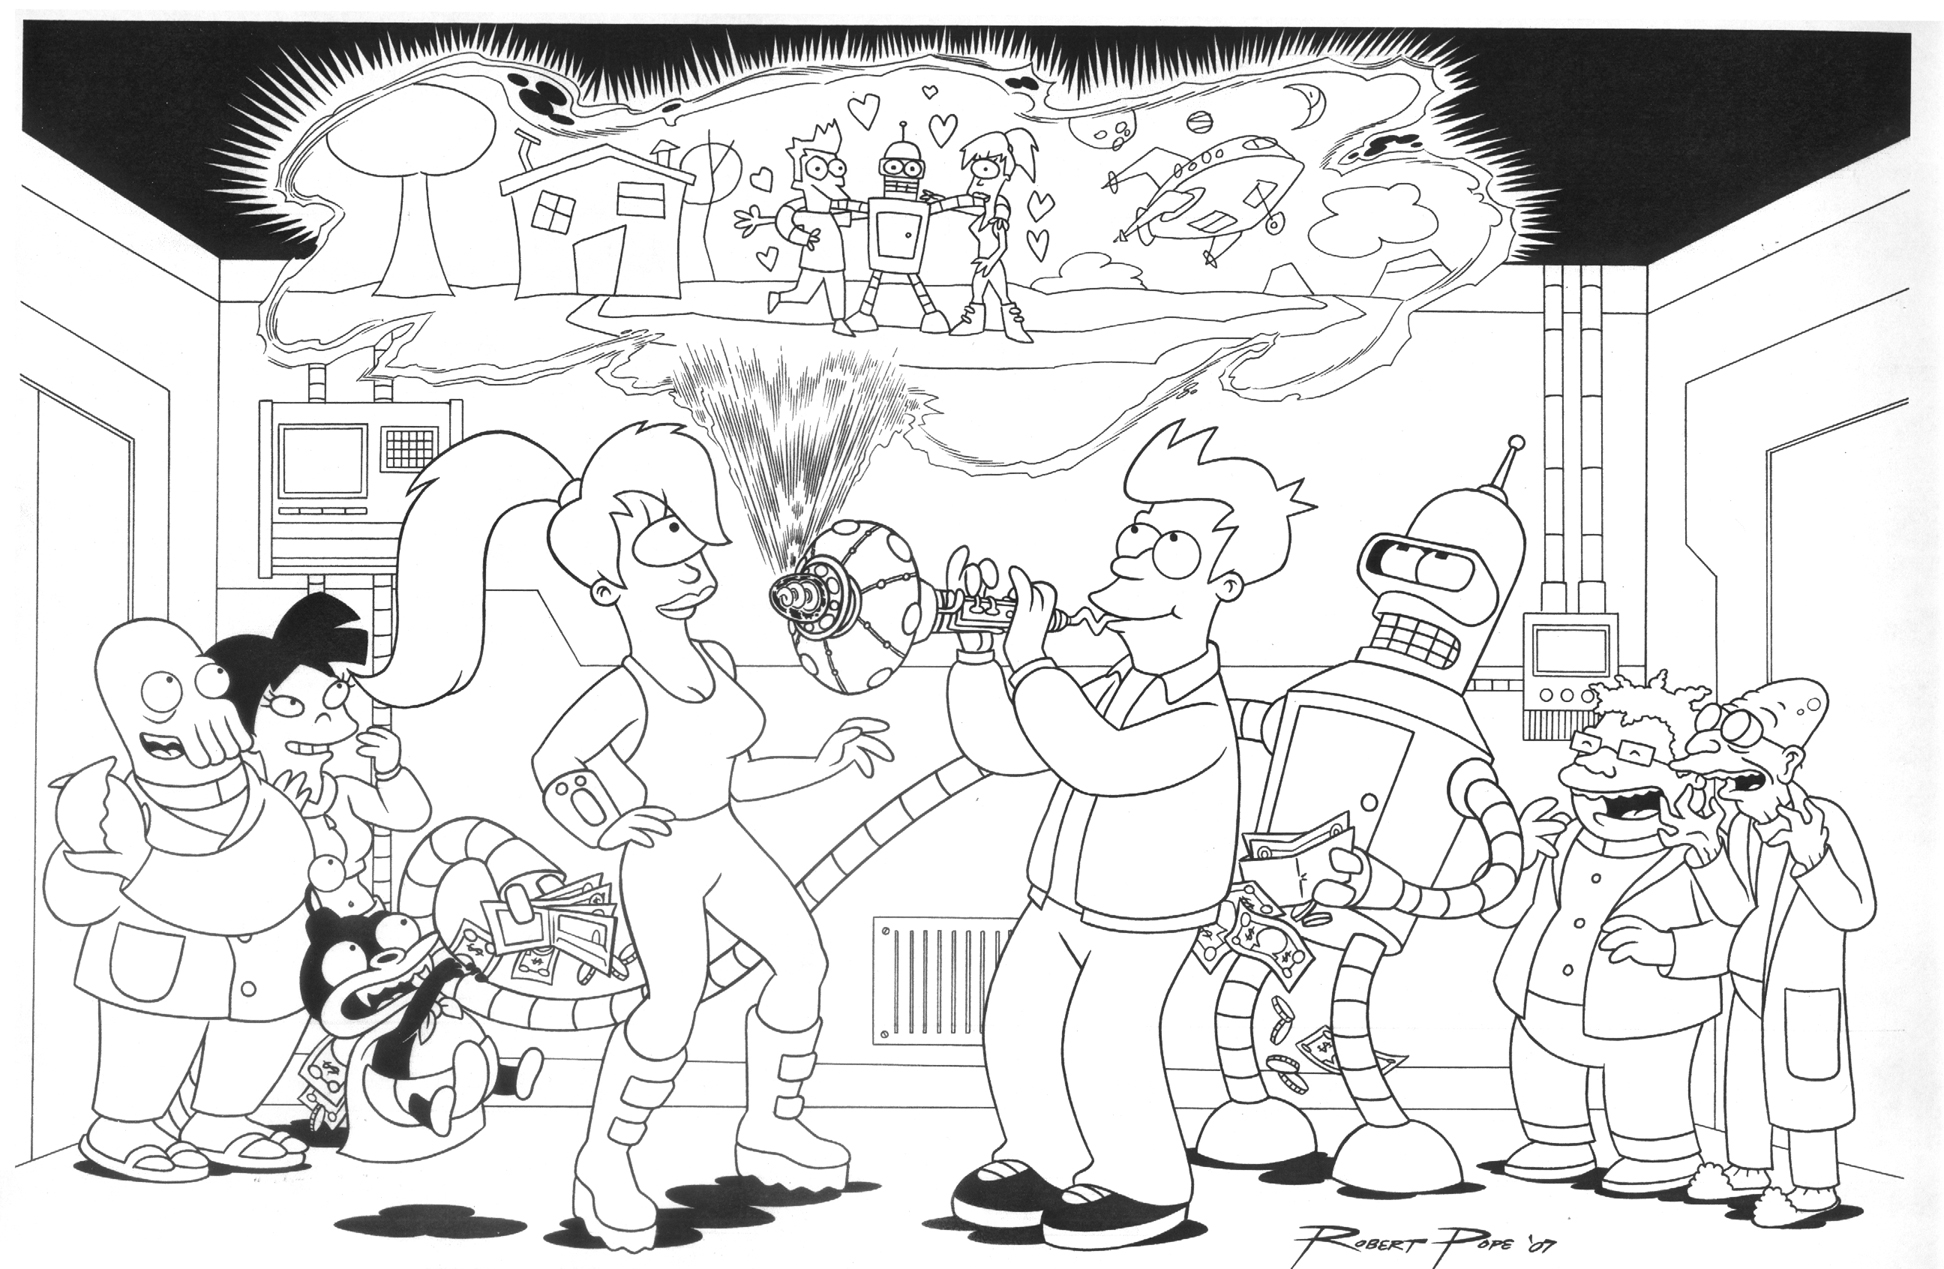 Futurama Knivvldr Coloring Pages Coloring Pages Futurama Coloring Pages